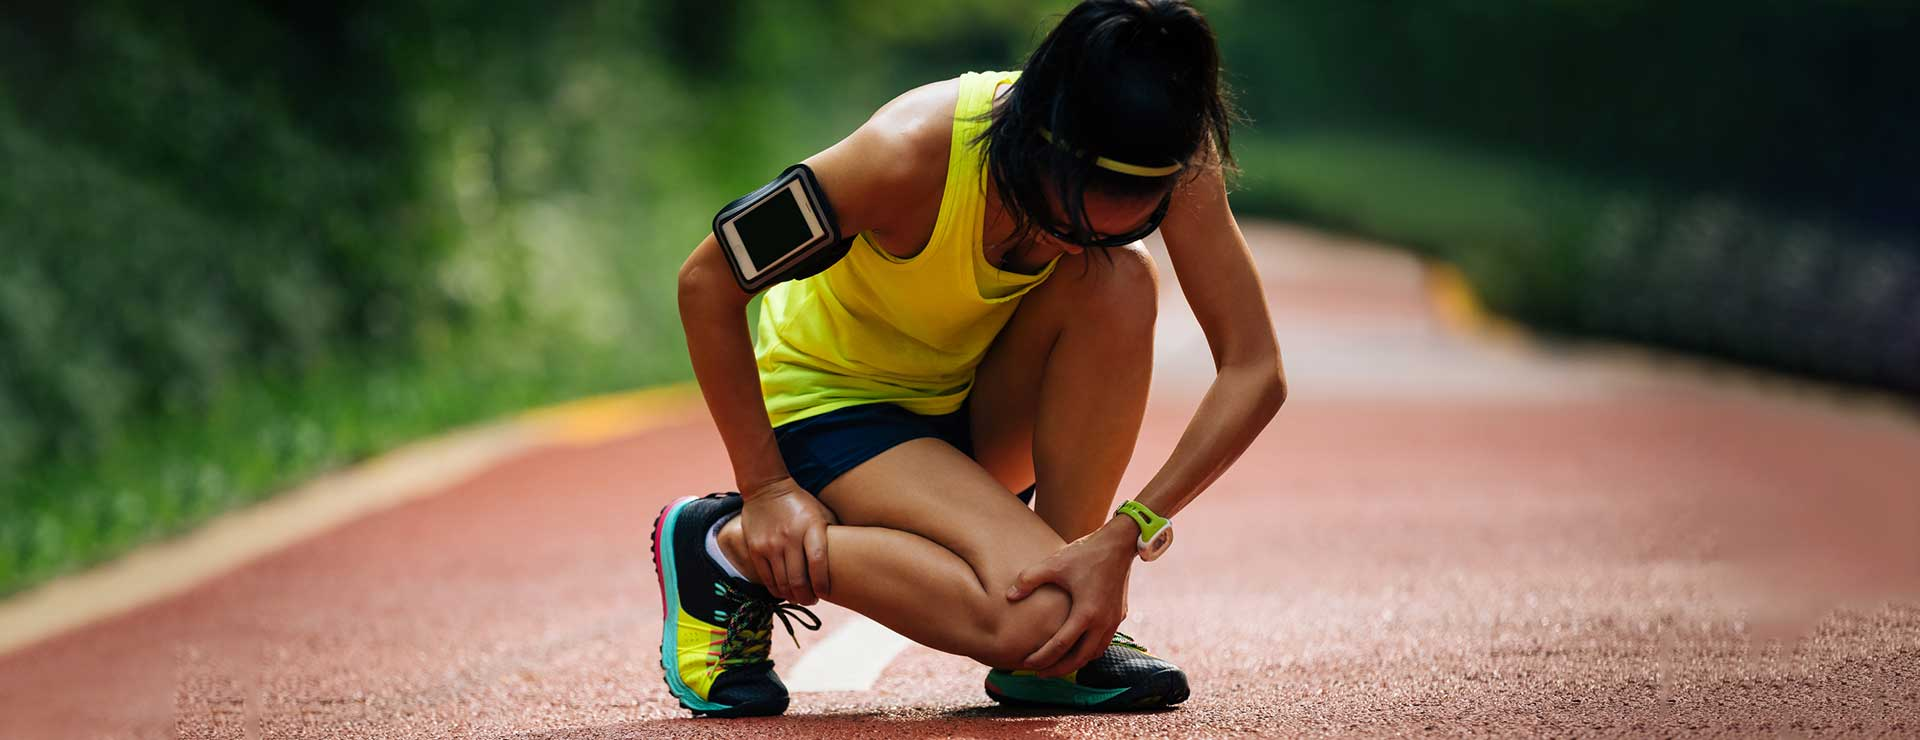 woman runner holding her knee in pain